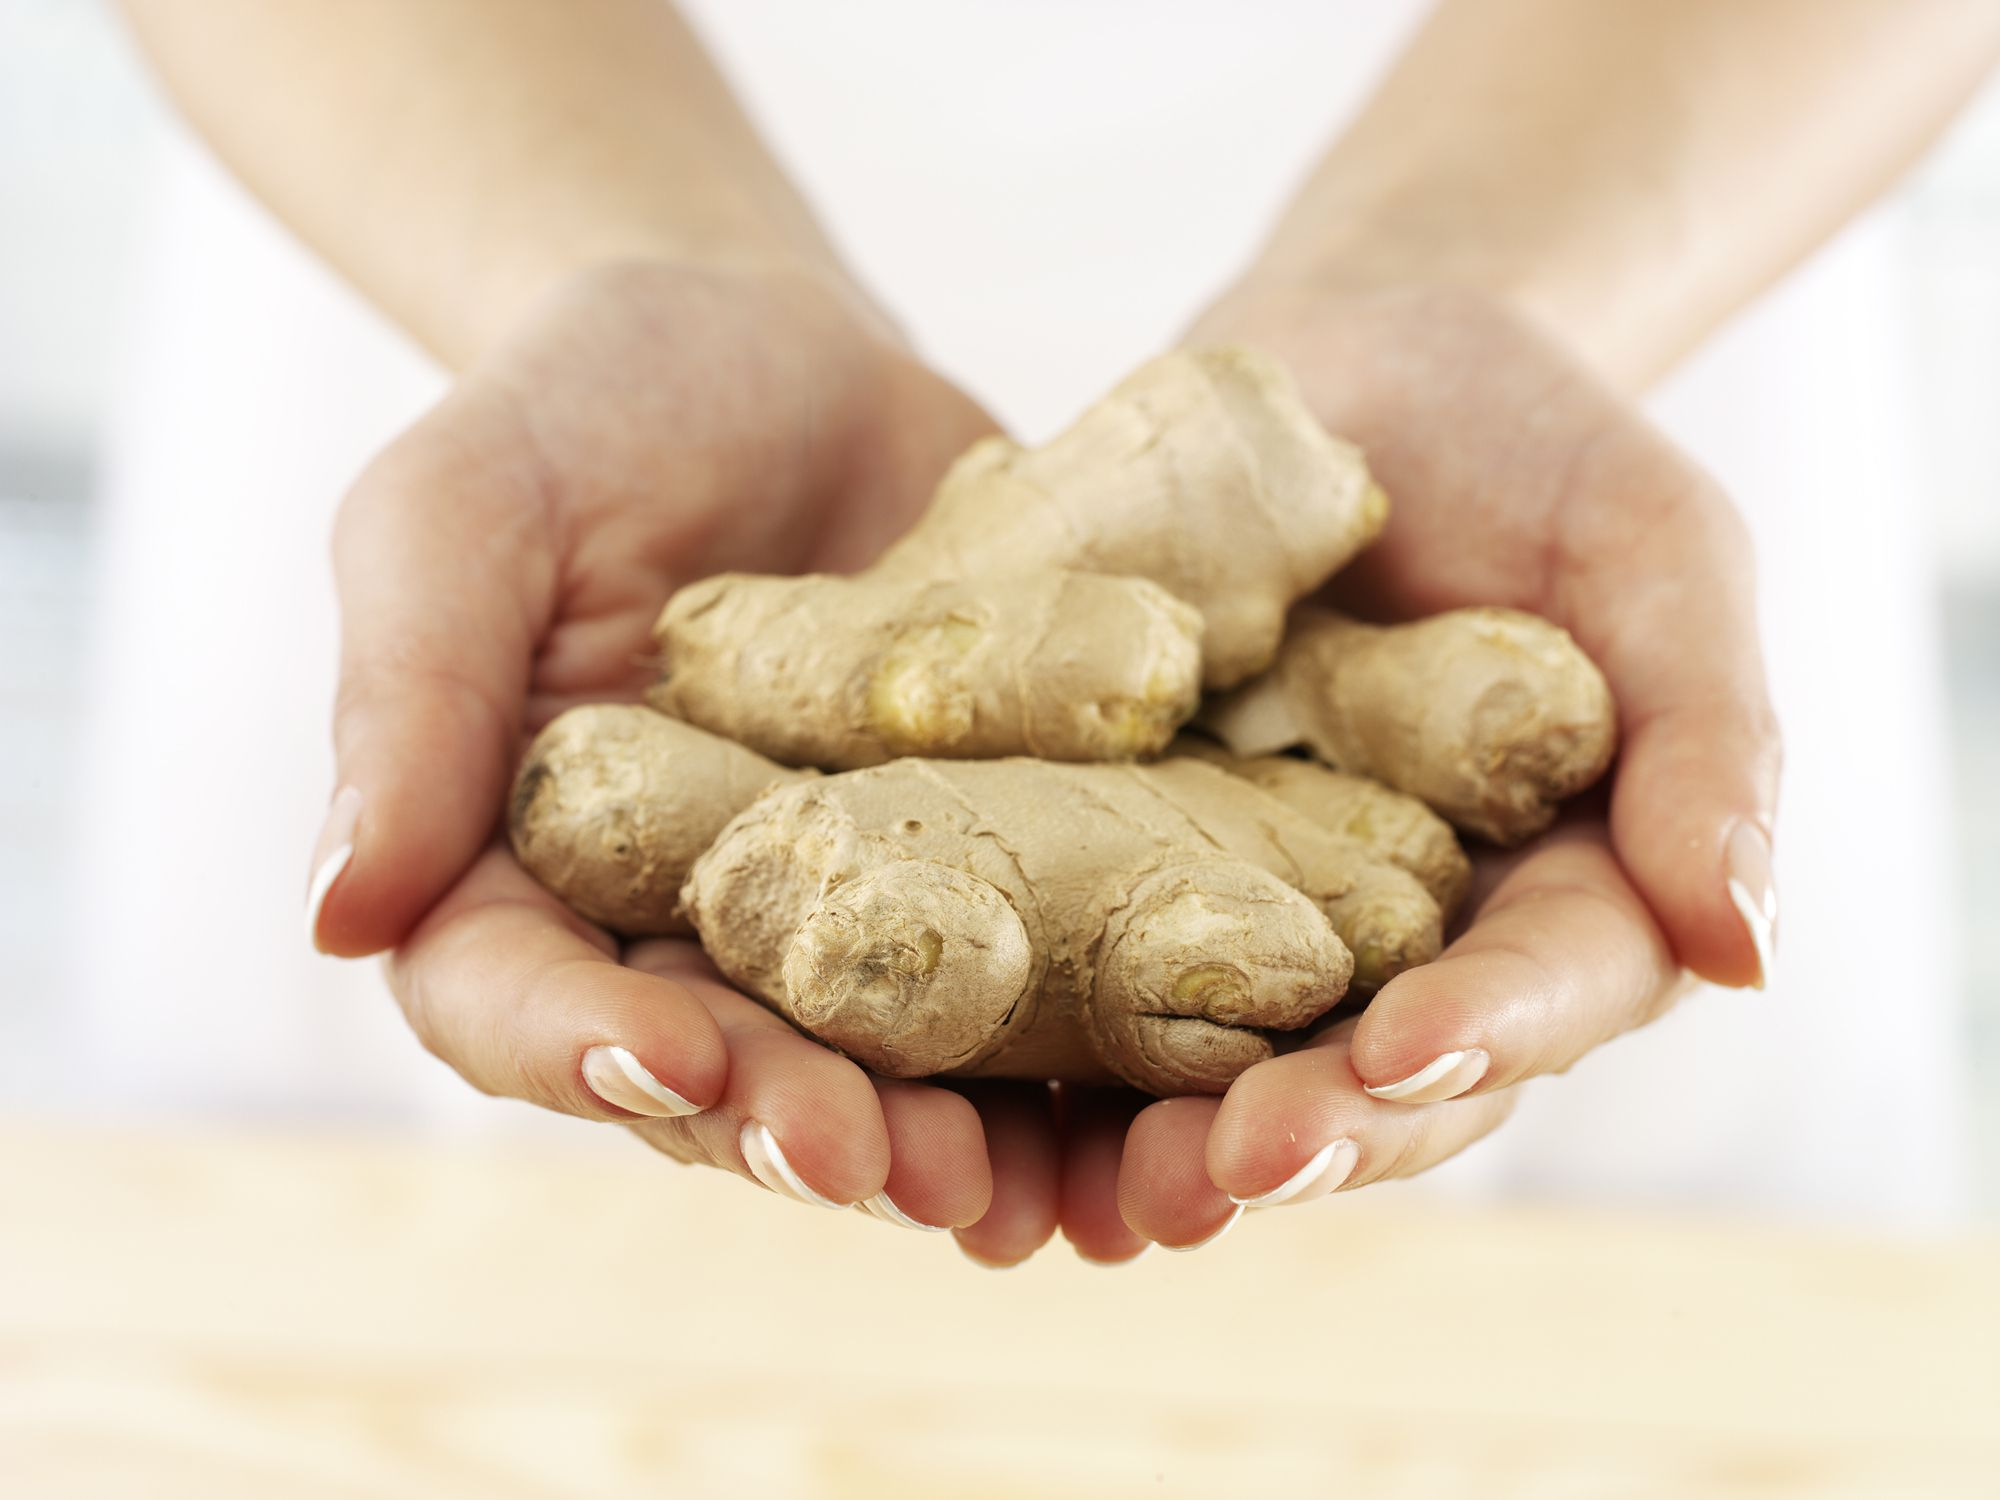 Ginger to Relieve Menstrual Cramps